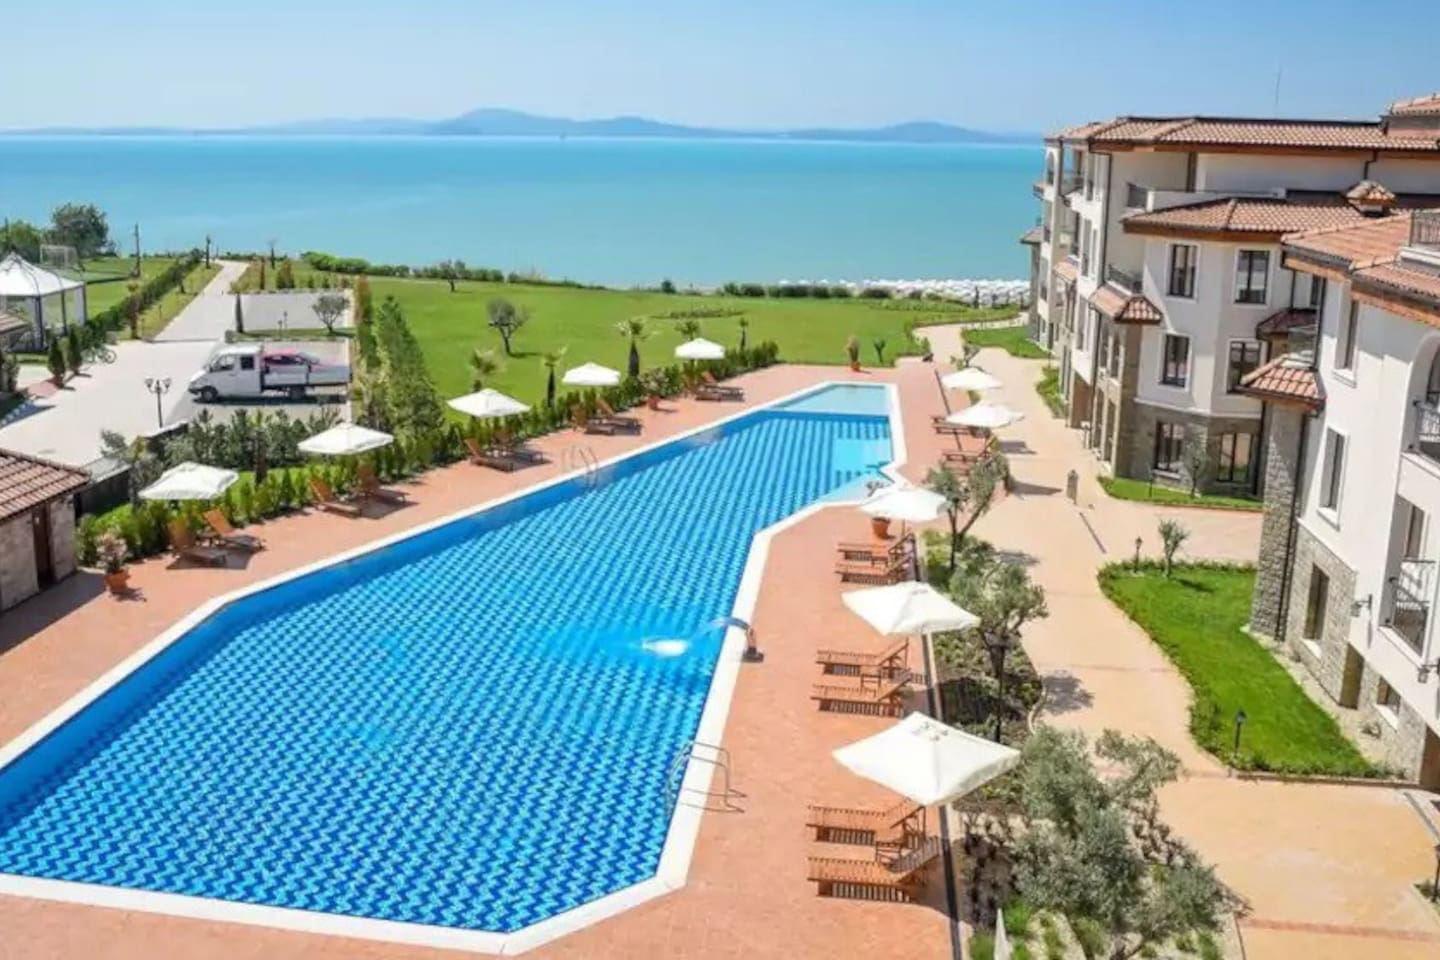 Sea front, clean sandy beach, 50 meters swimming pool and a separate pool for kids. Nice restaurant nest to the apartment complex.